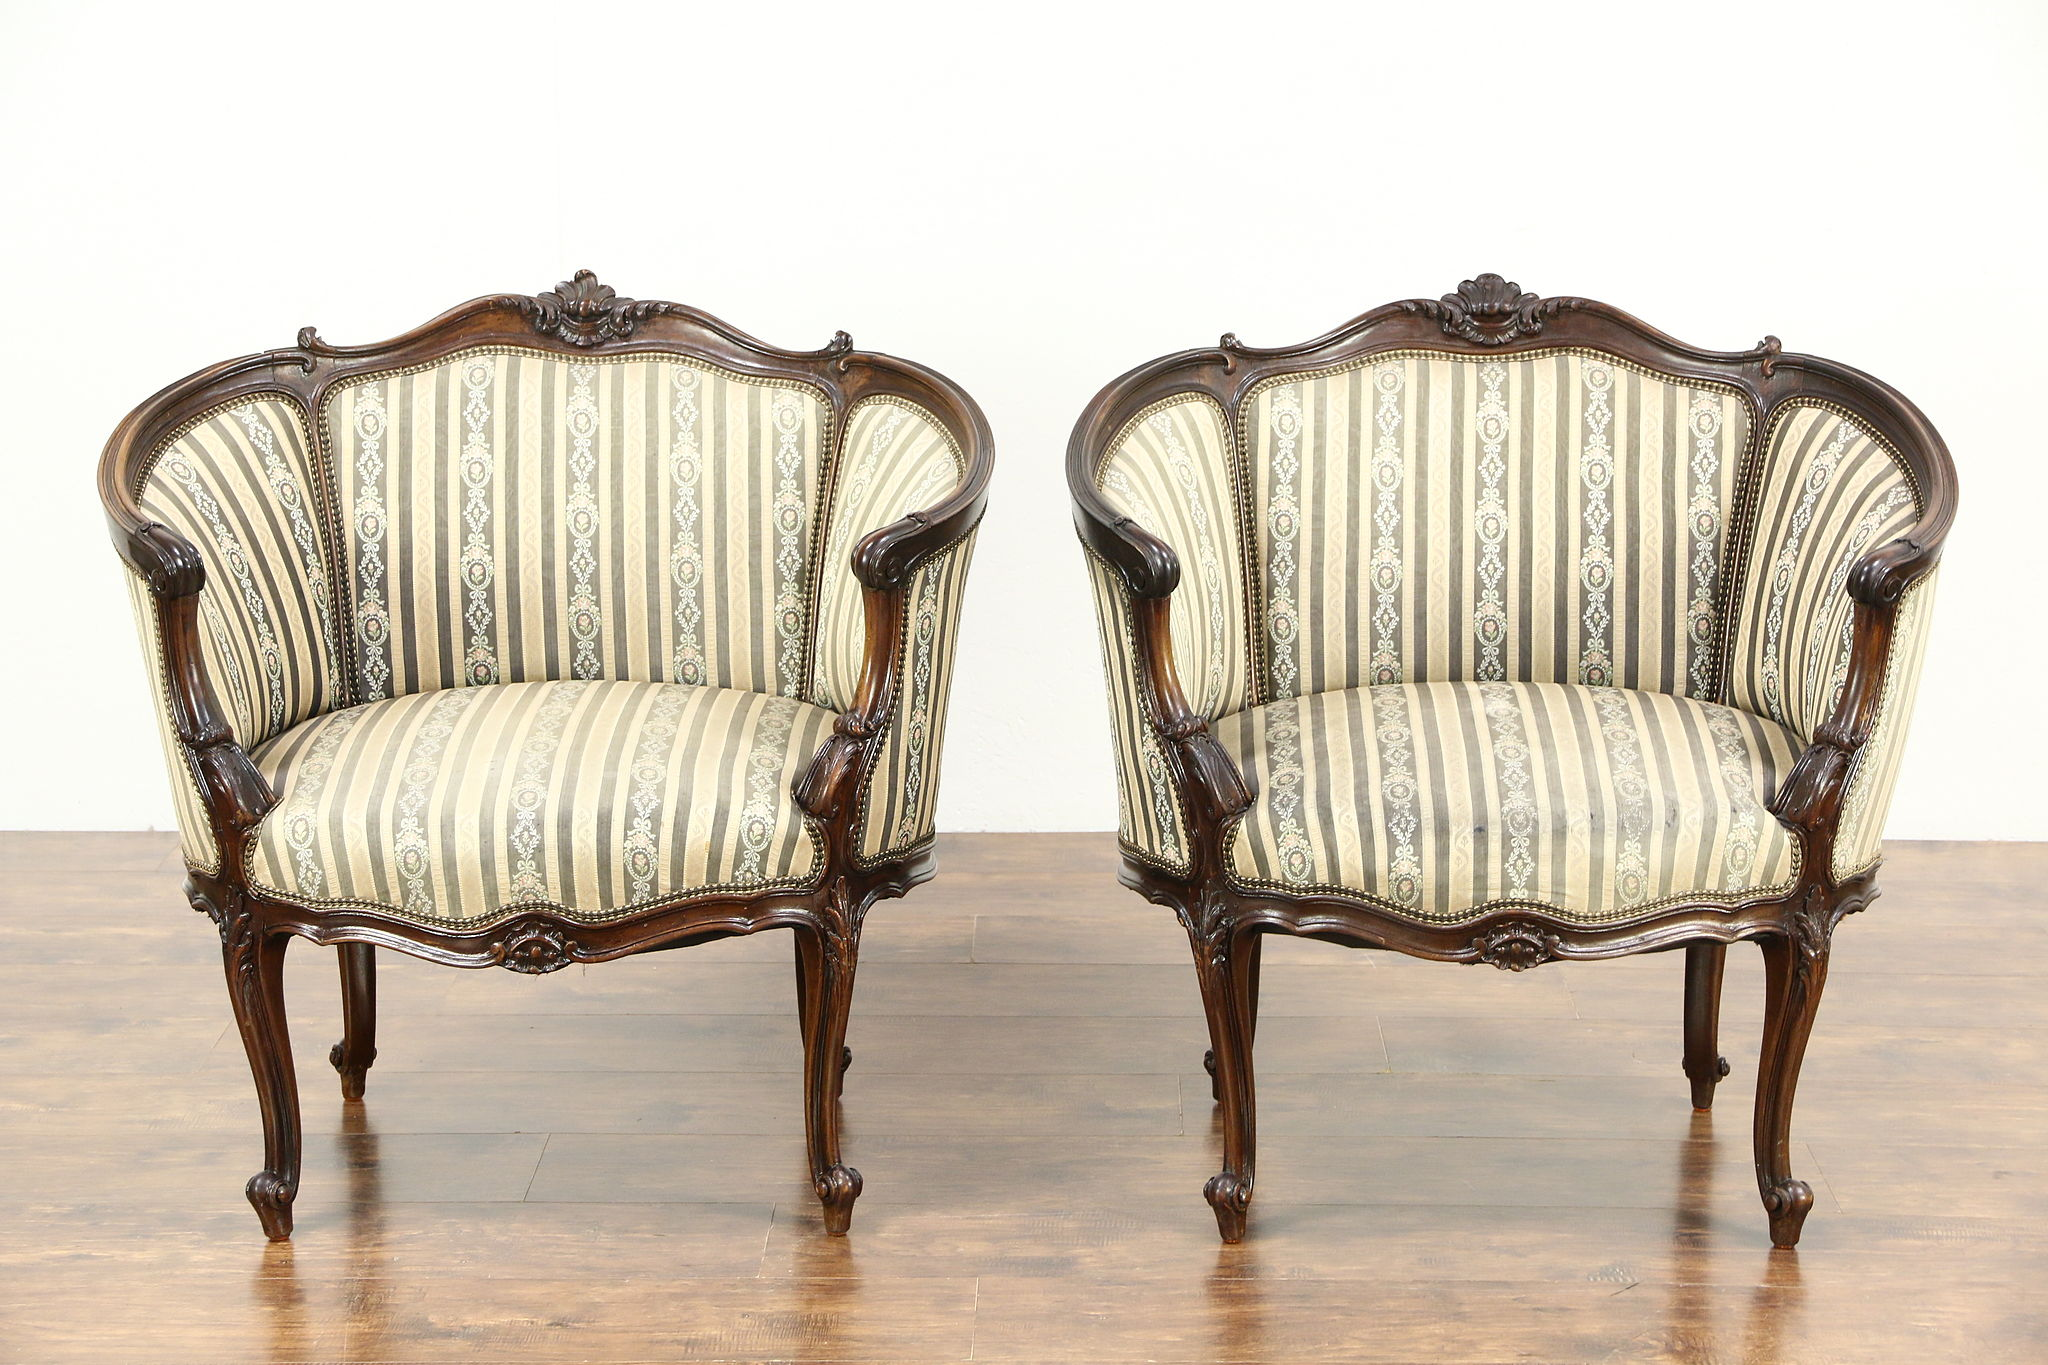 Louis The 14th Furniture Sold Pair Of French Louis Xiv Hand Carved Walnut 1920